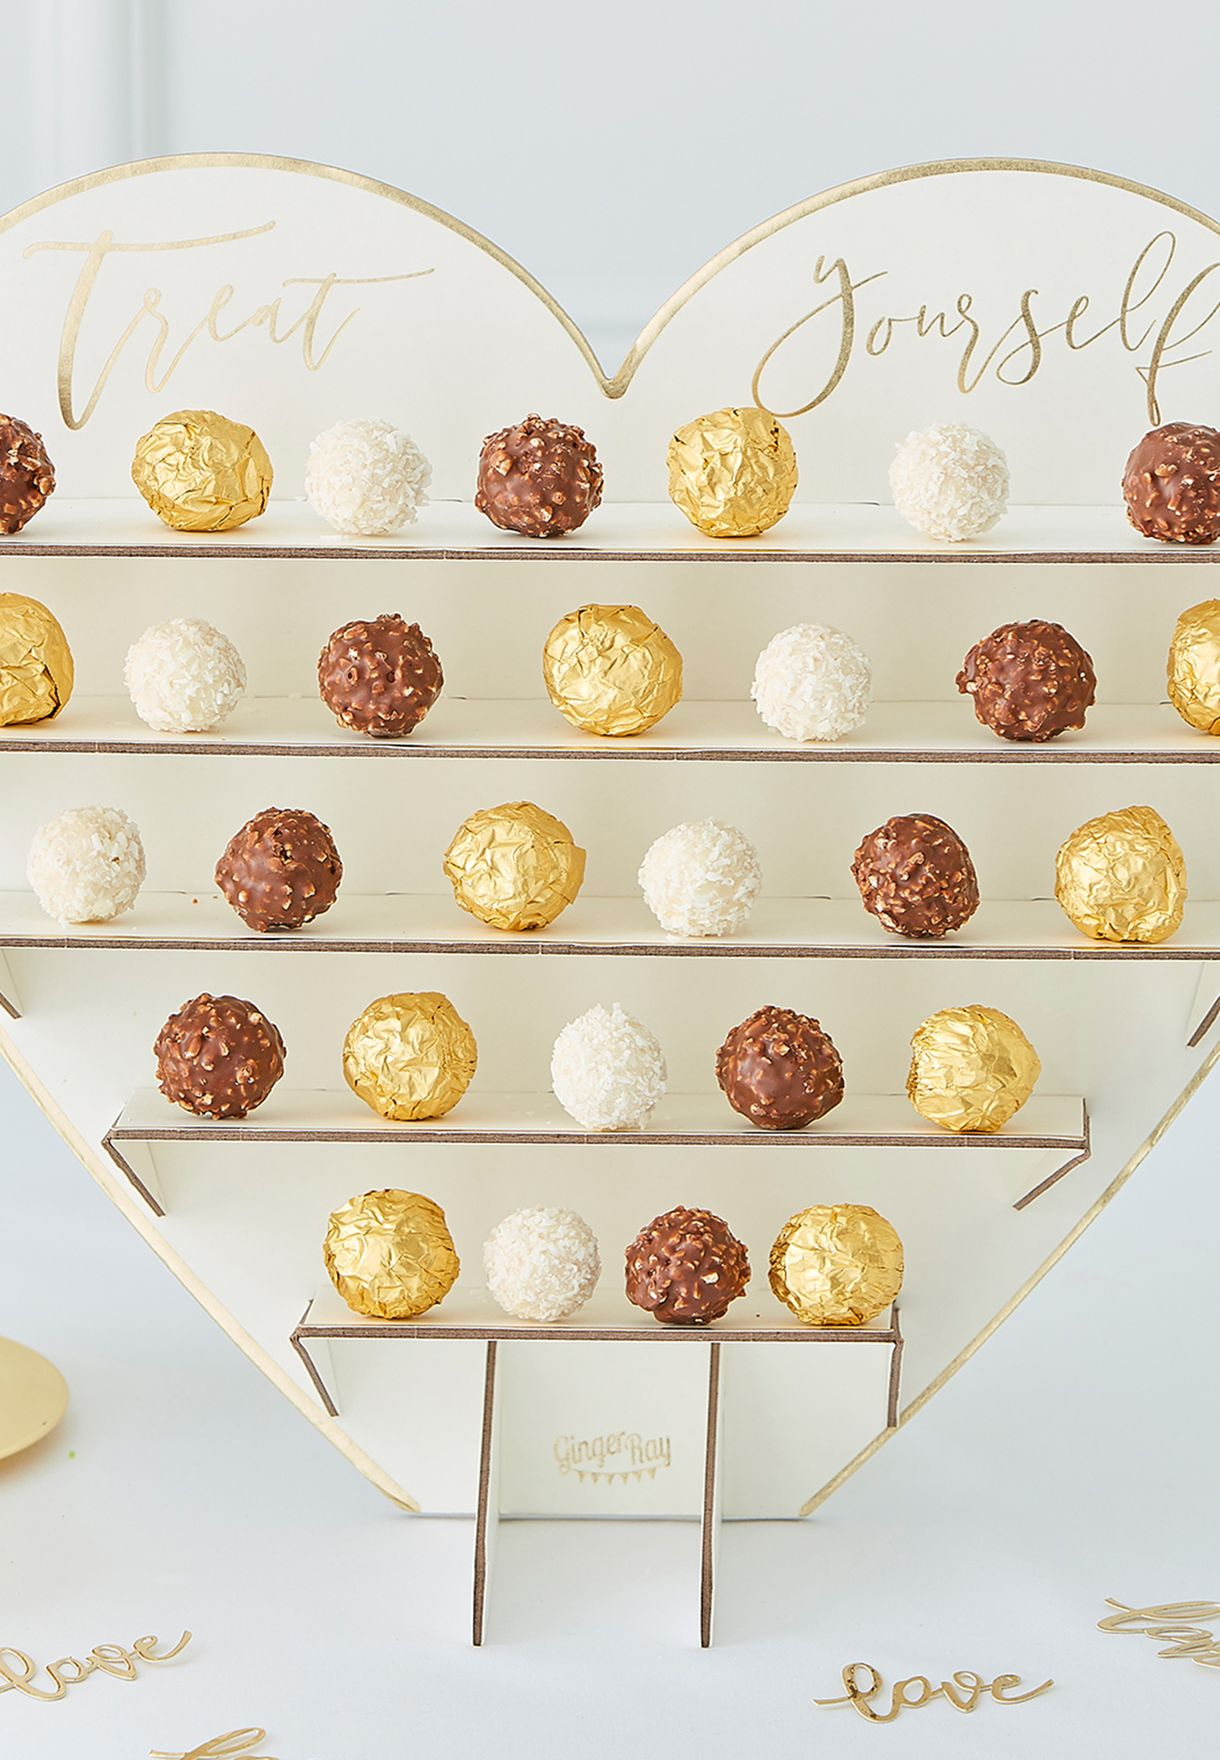 Heart Shaped Sweet Stand